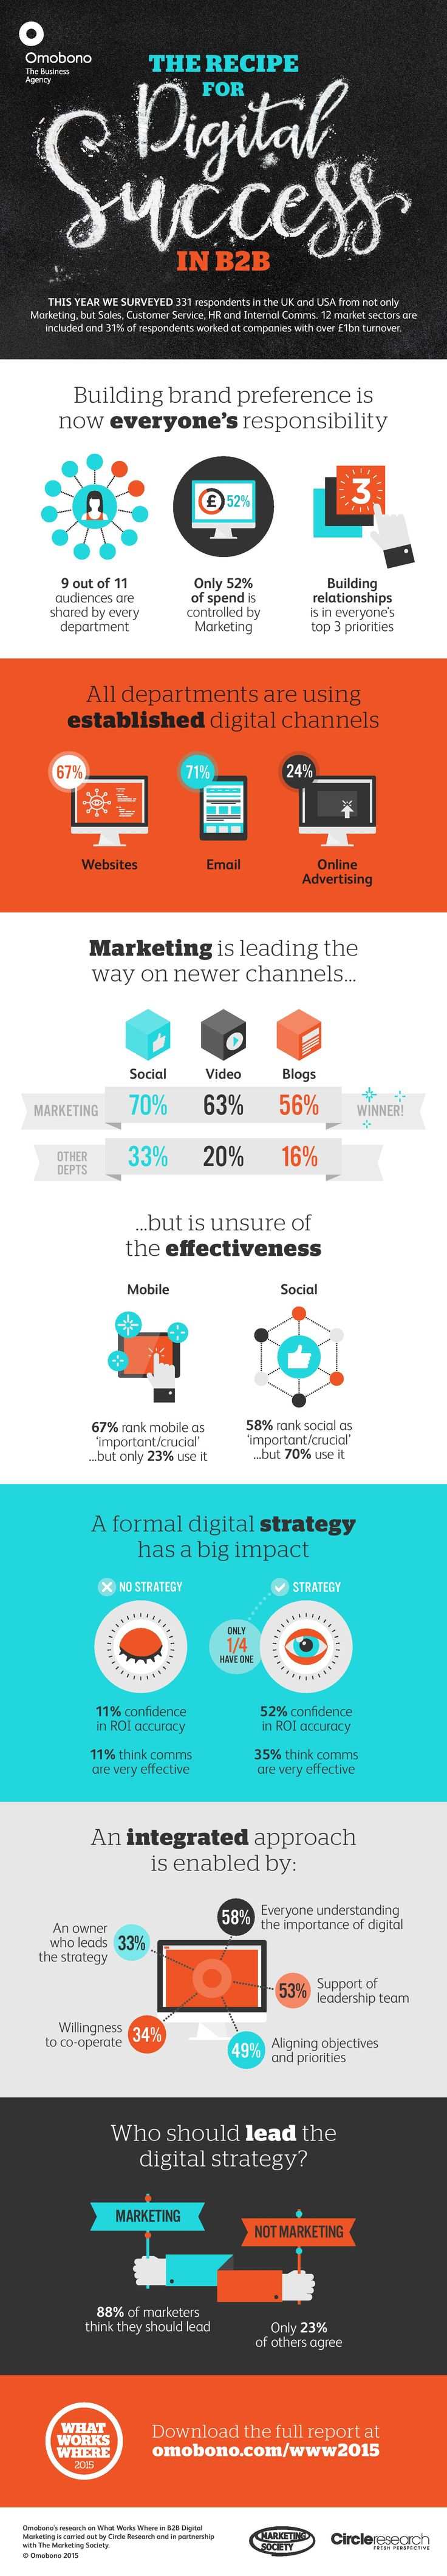 The recipe for digital success in B2B (Infographic) via Omobono